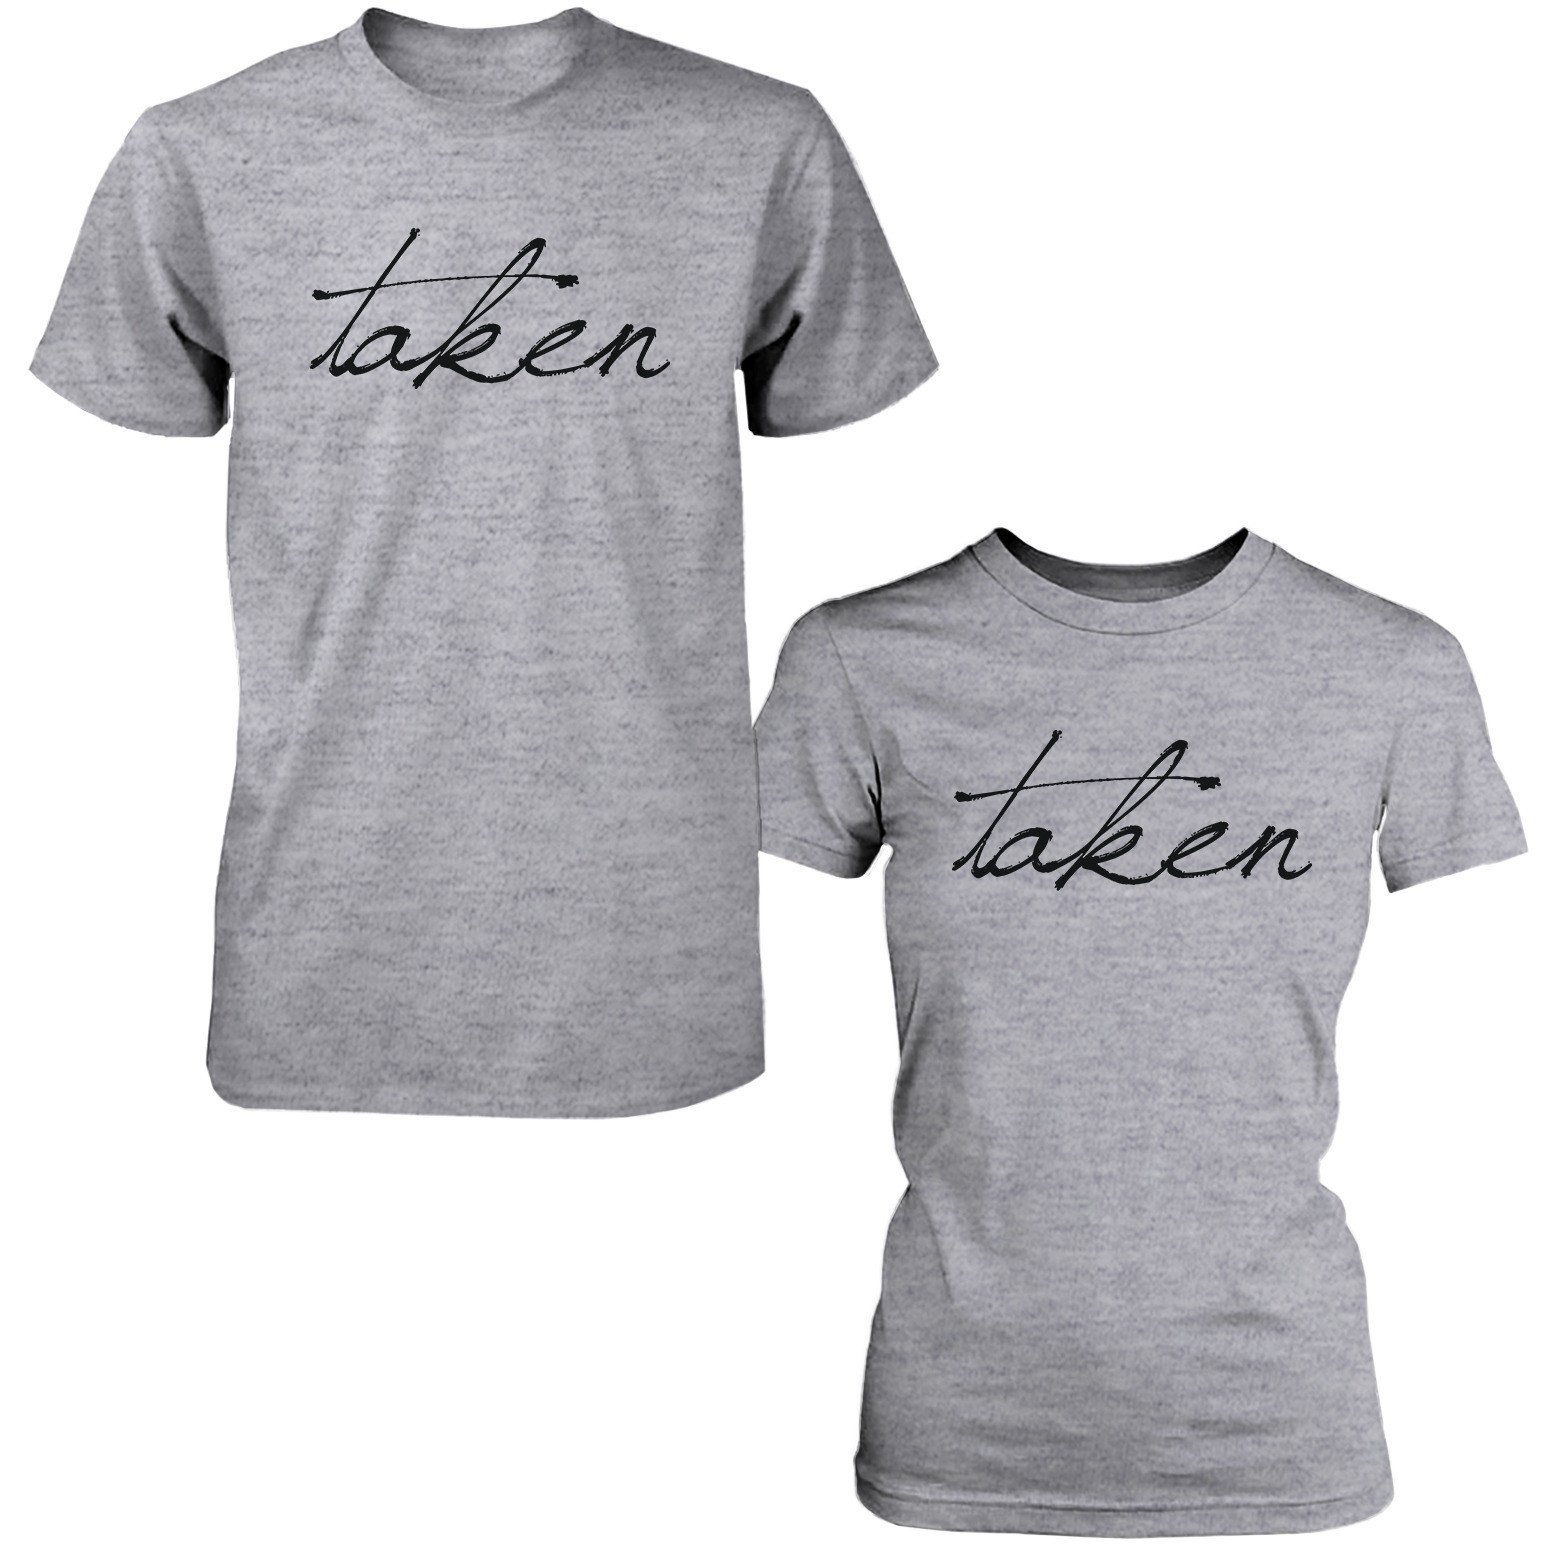 Cute Matching Couple TShirts For Boyfriend and Girlfriend